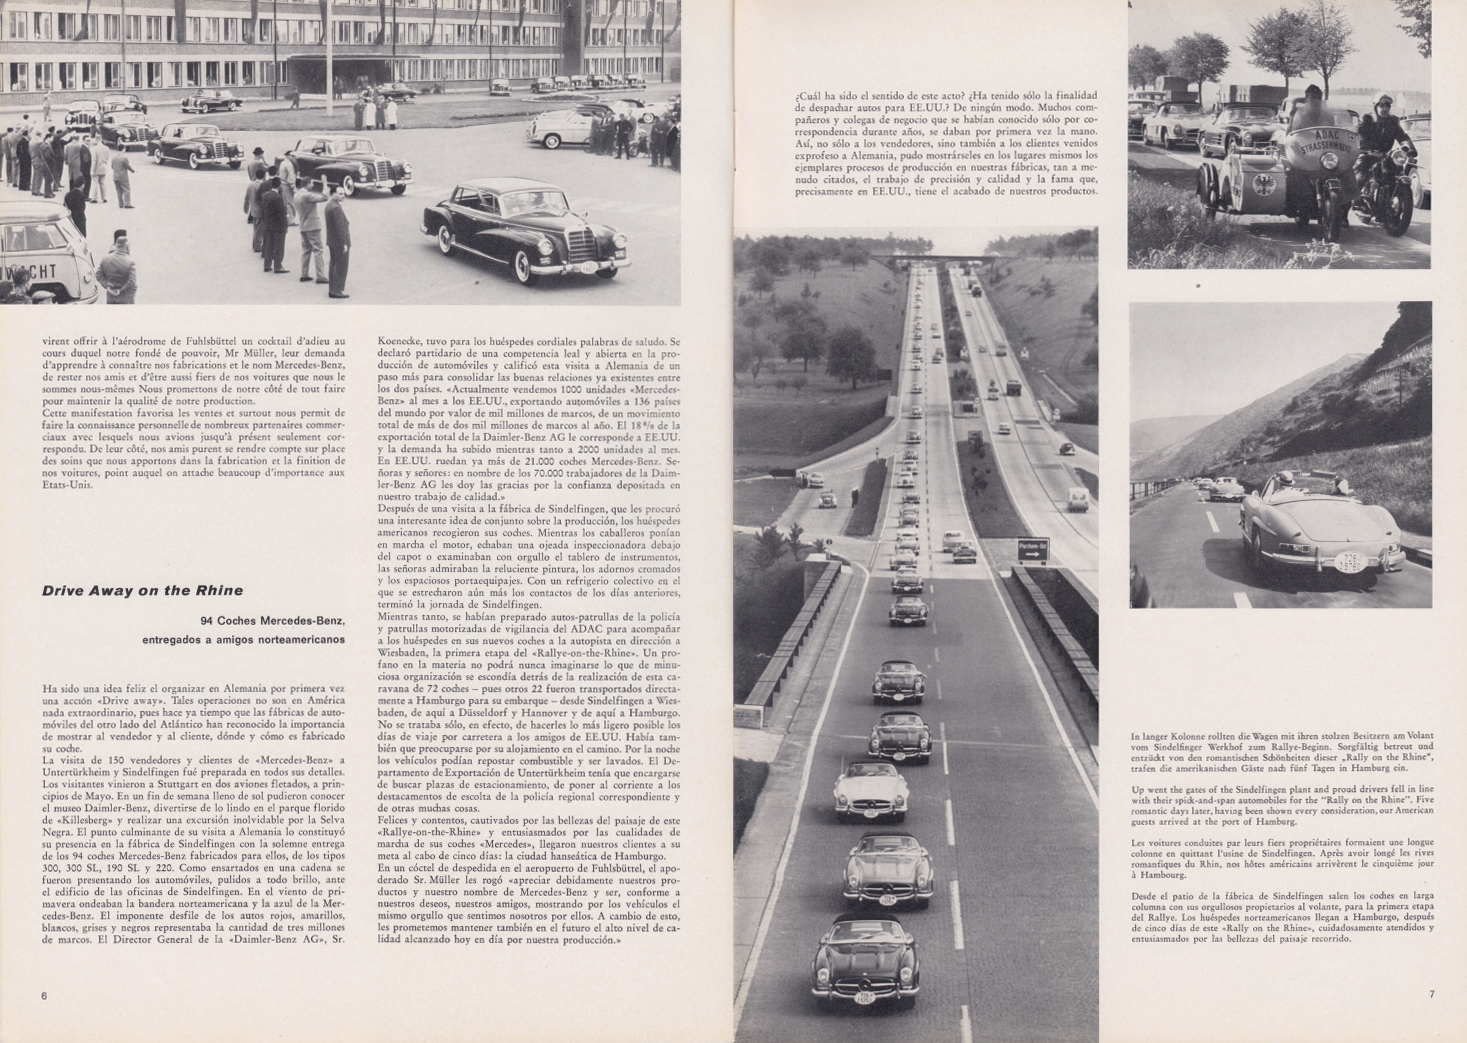 (REVISTA): Periódico In aller welt n.º 33 - Mercedes-Benz no mundo - 1959 - multilingue 004